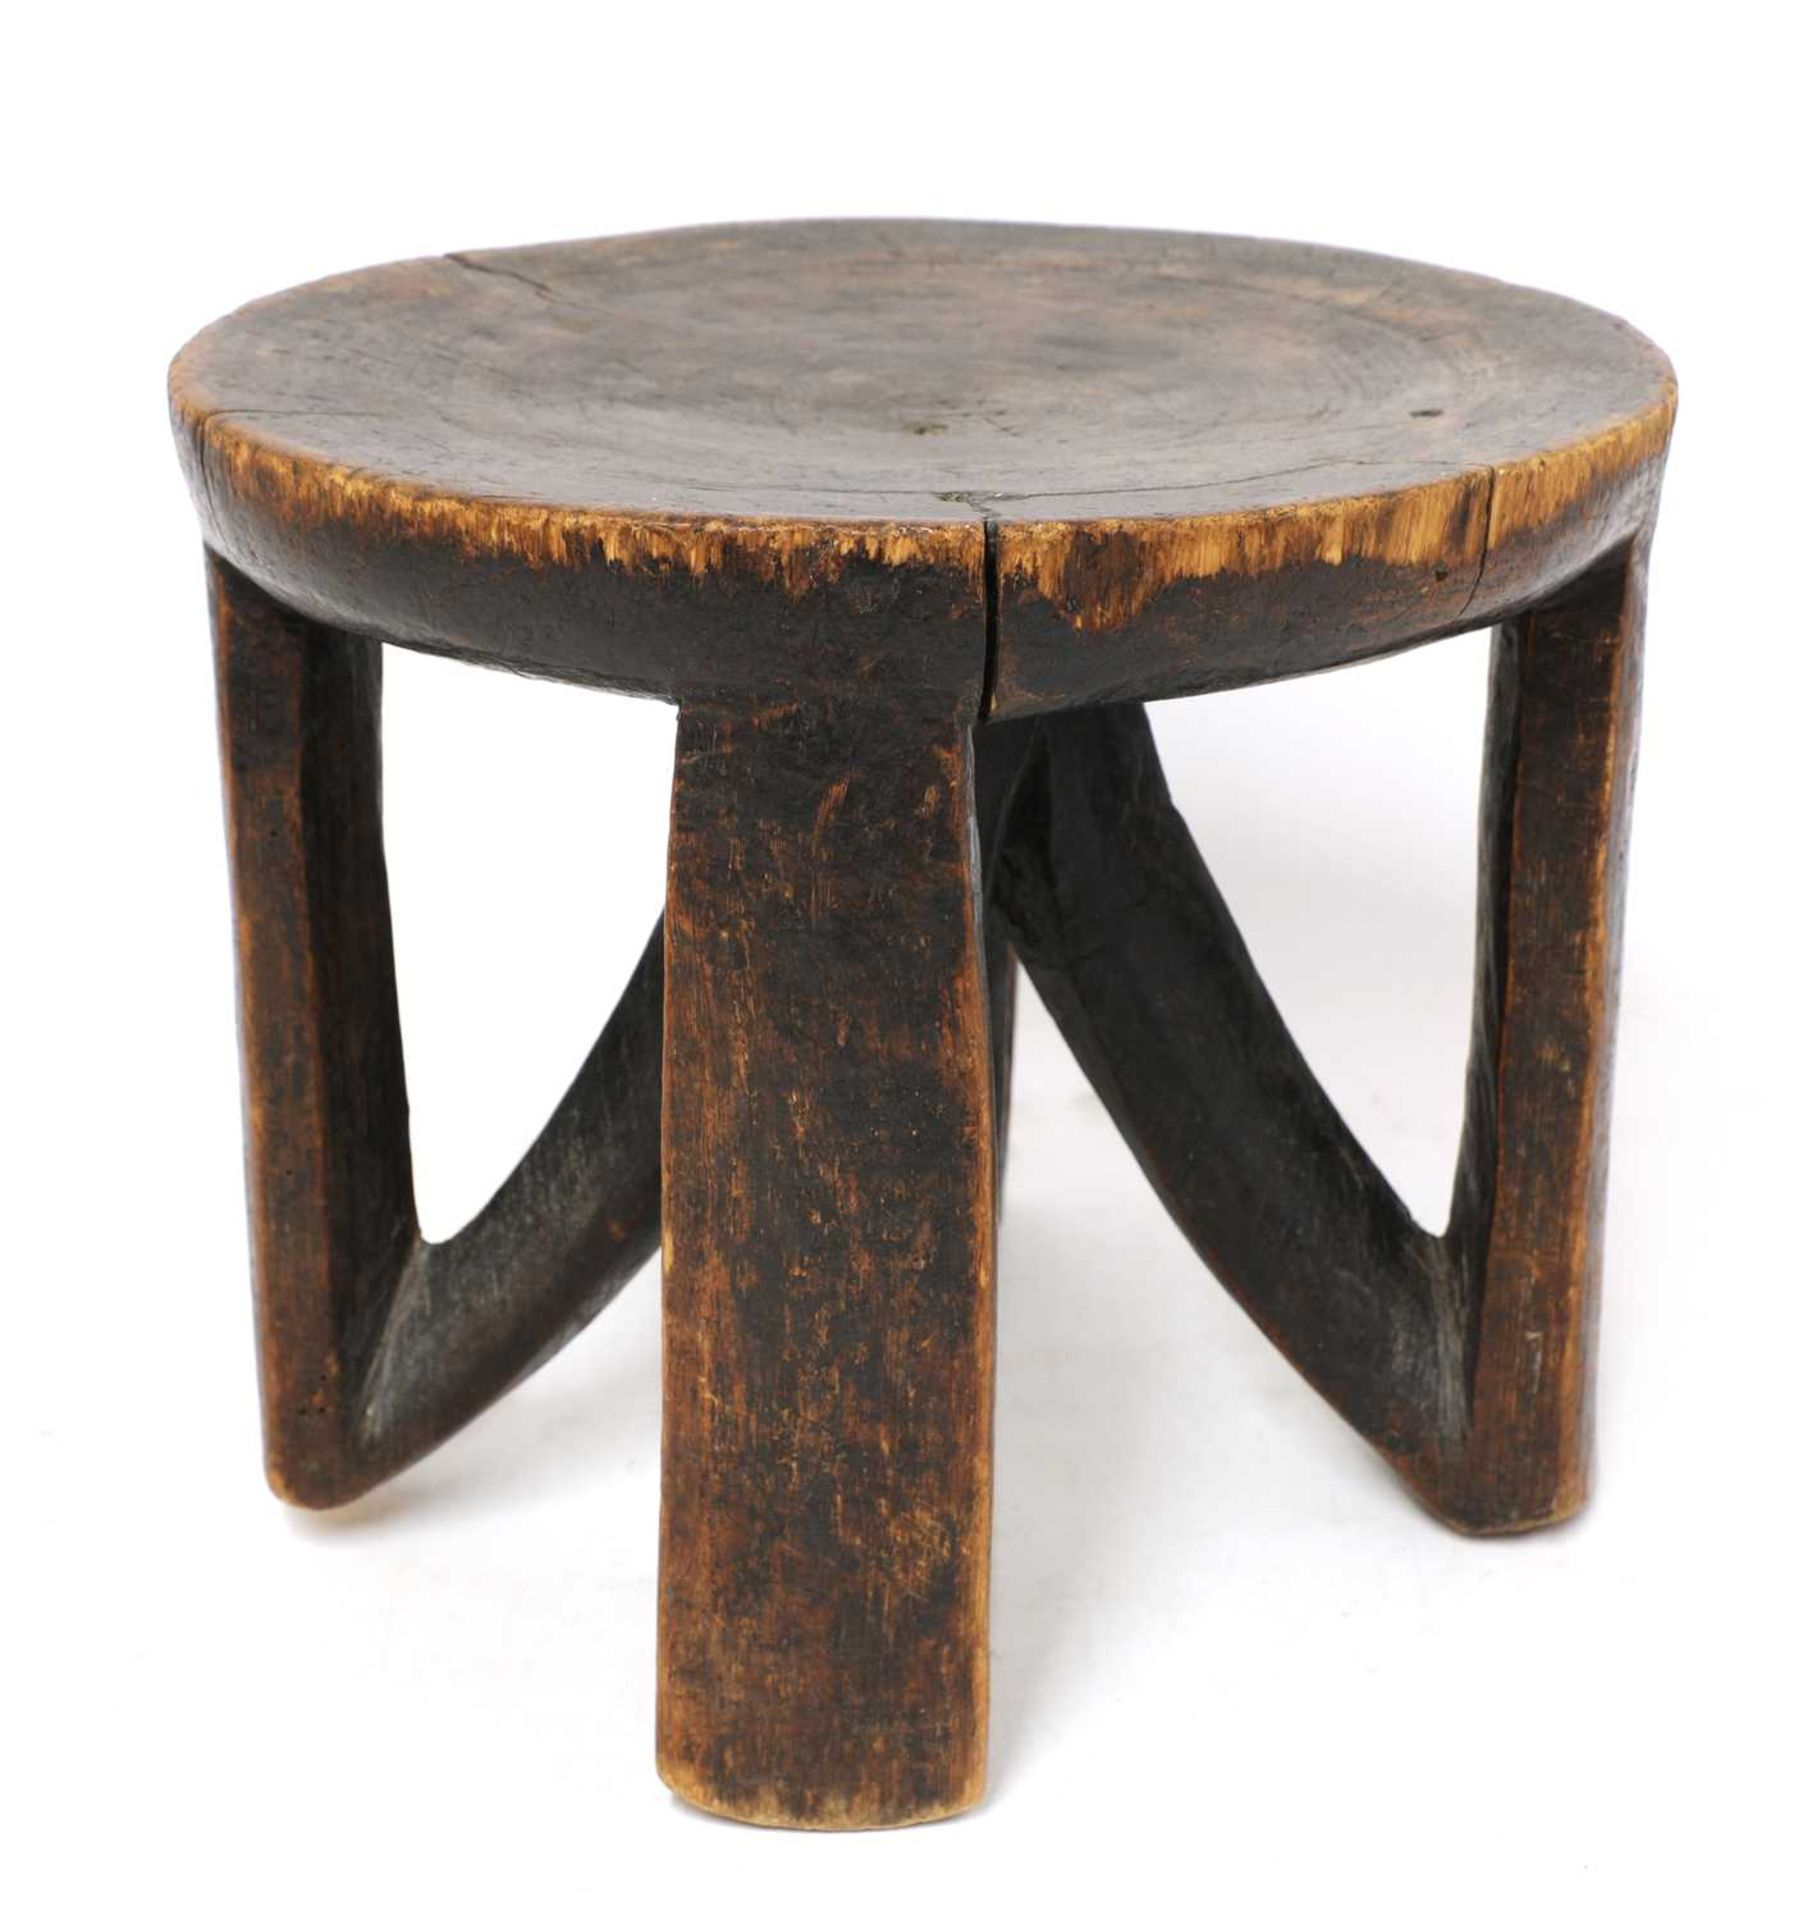 An East African tribal stool, - Image 3 of 4